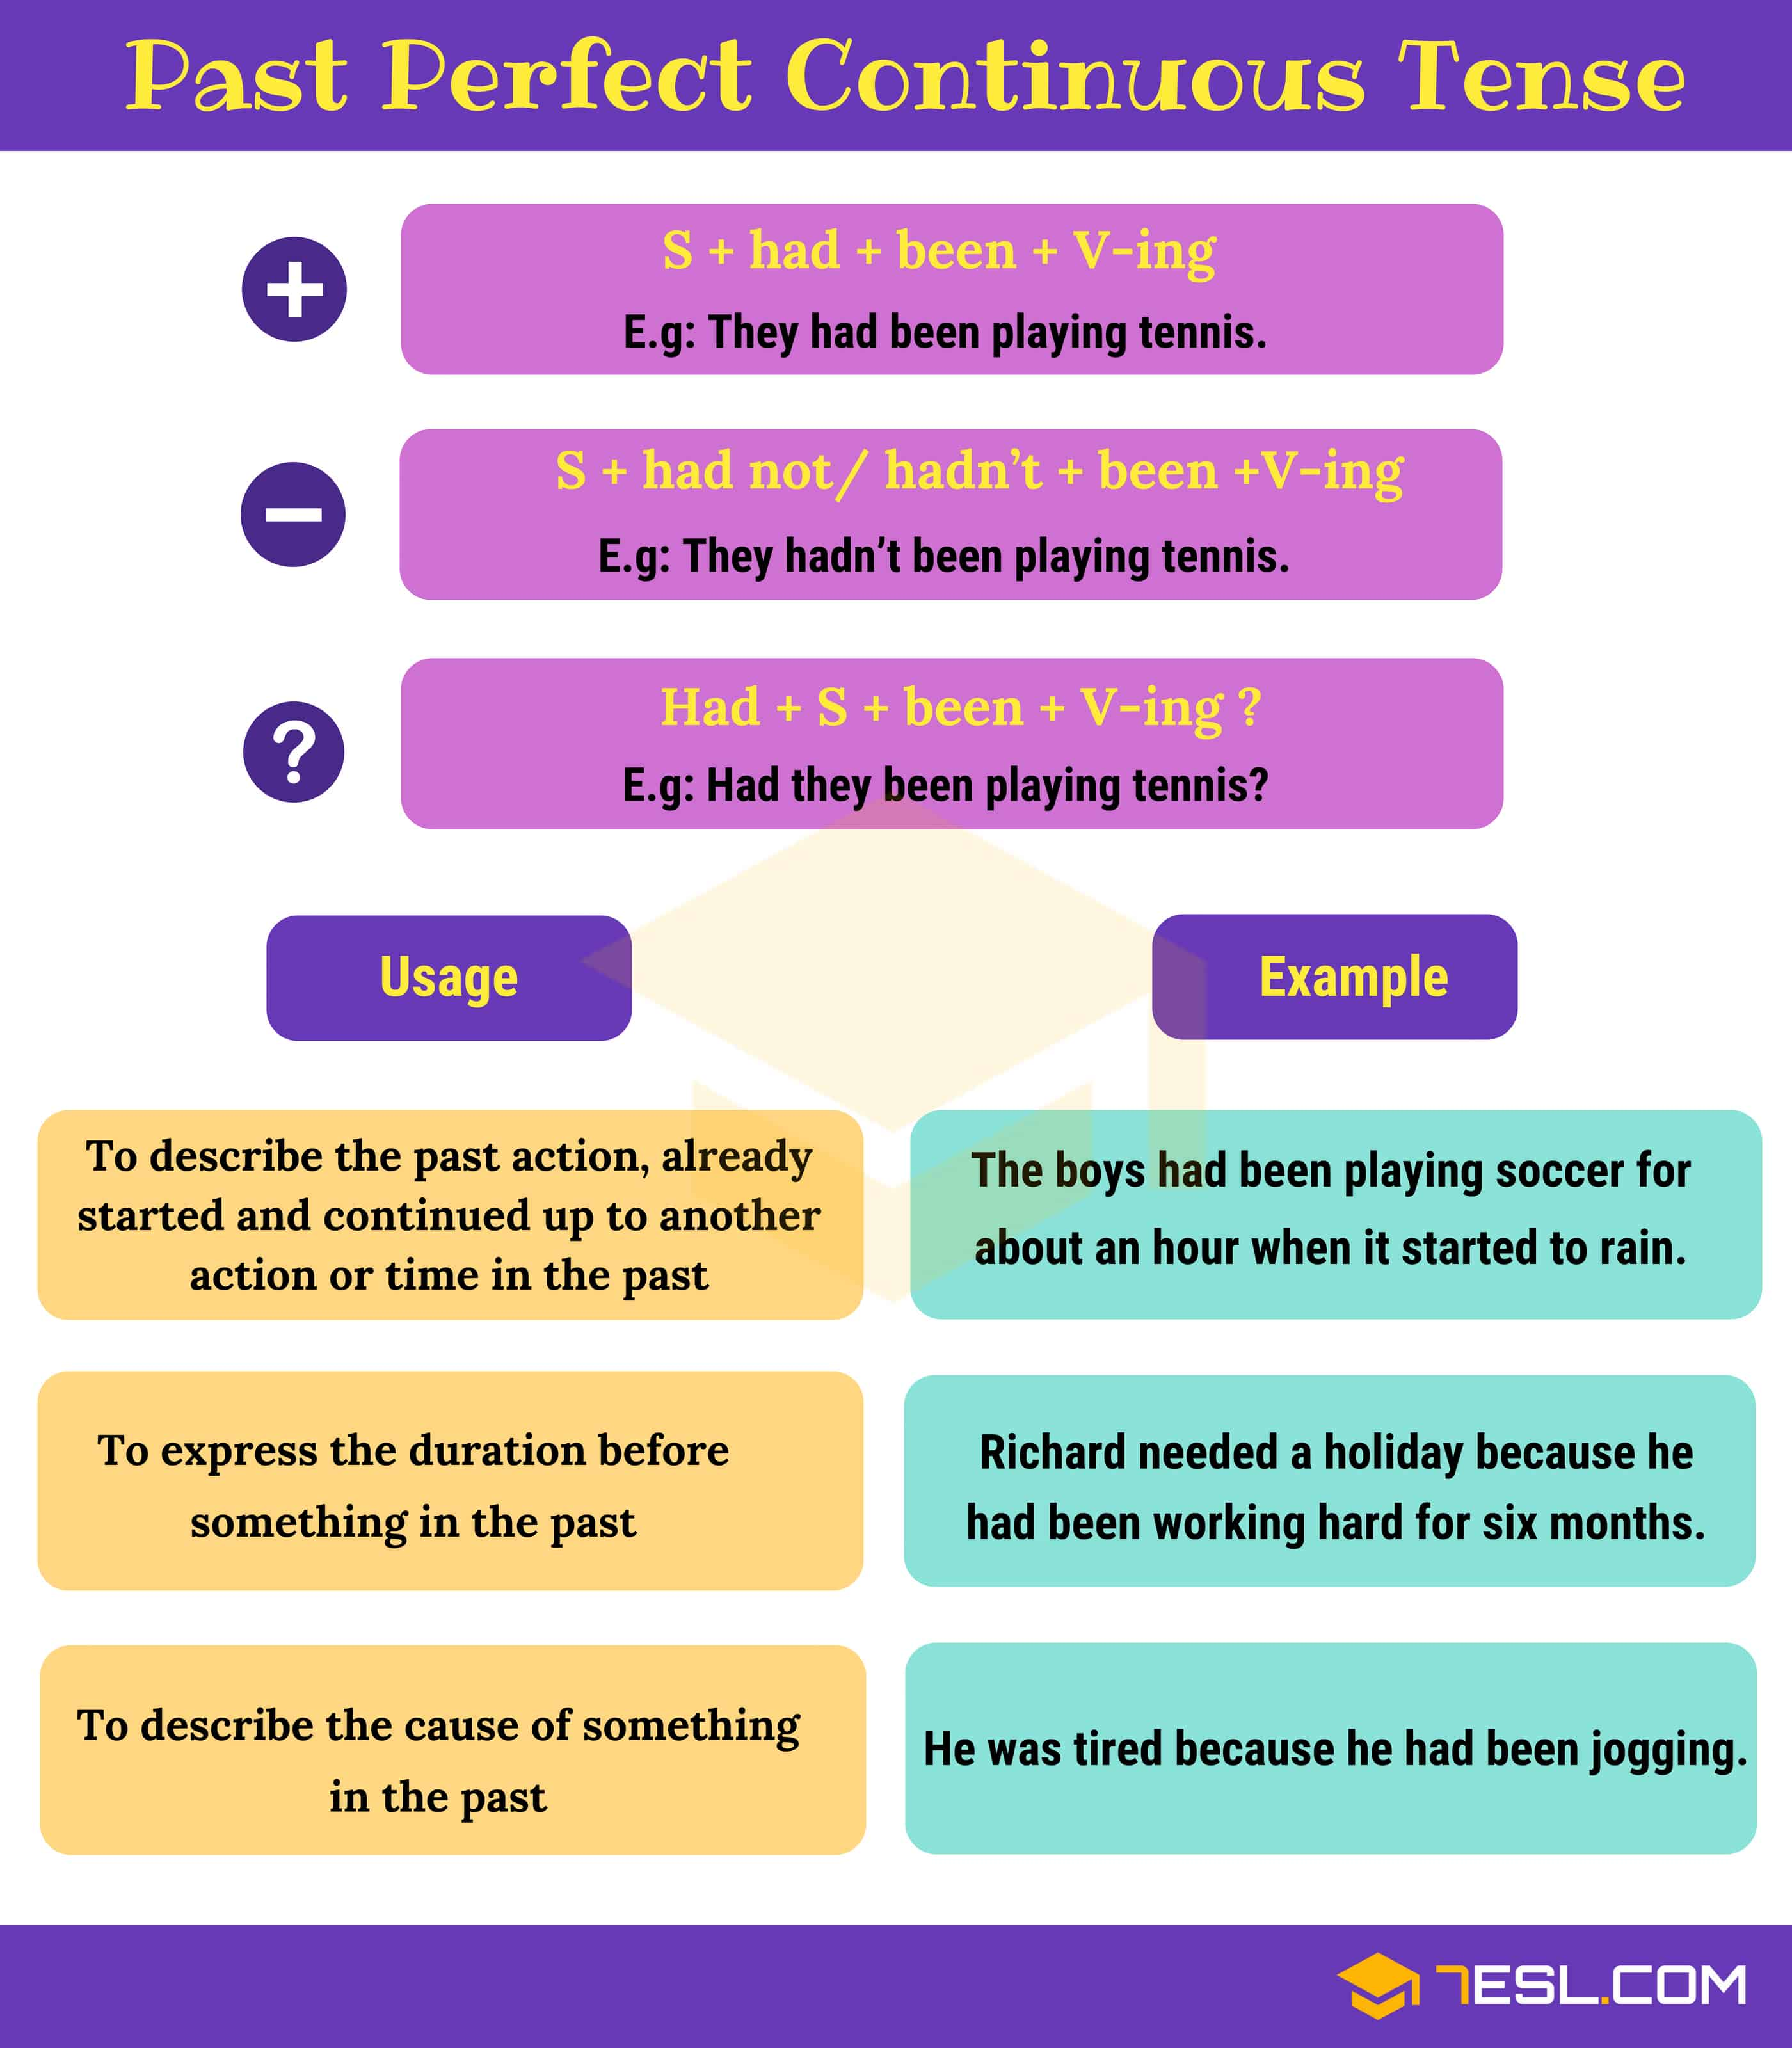 Past Perfect Continuous Tense Rules And Examples